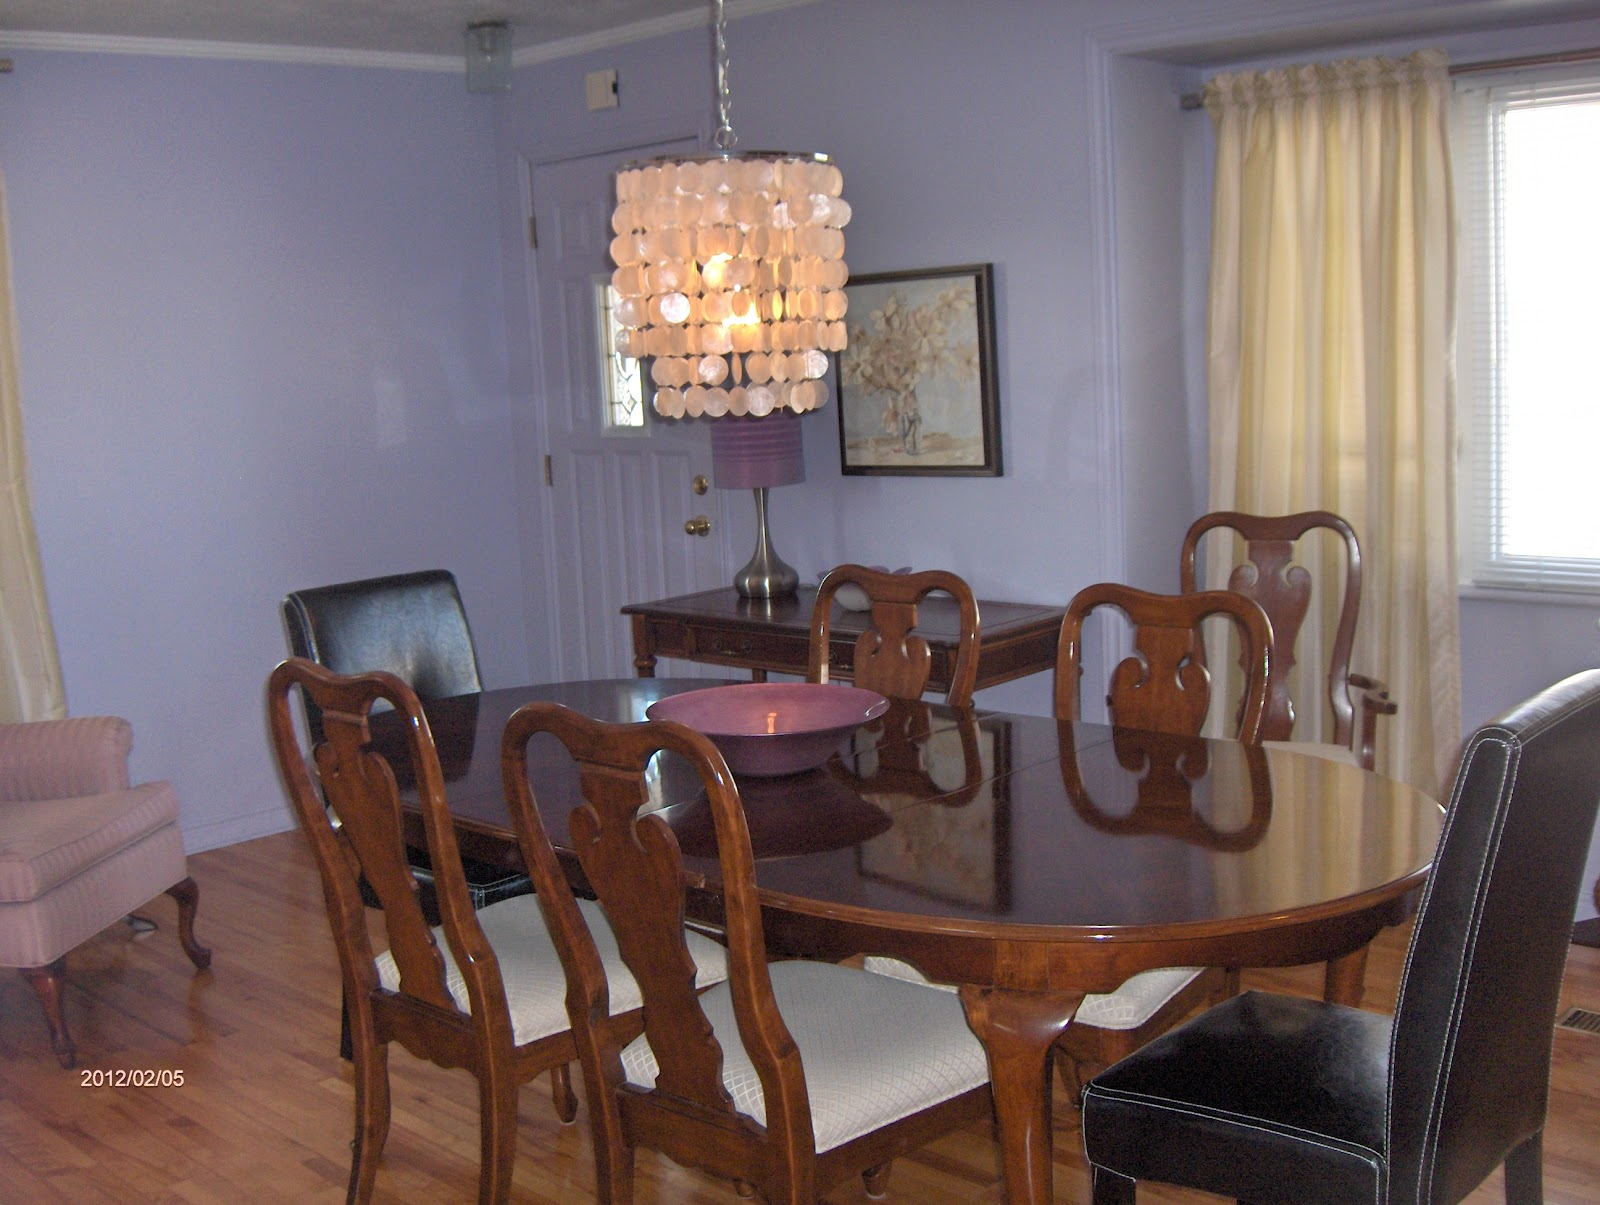 Little dining room